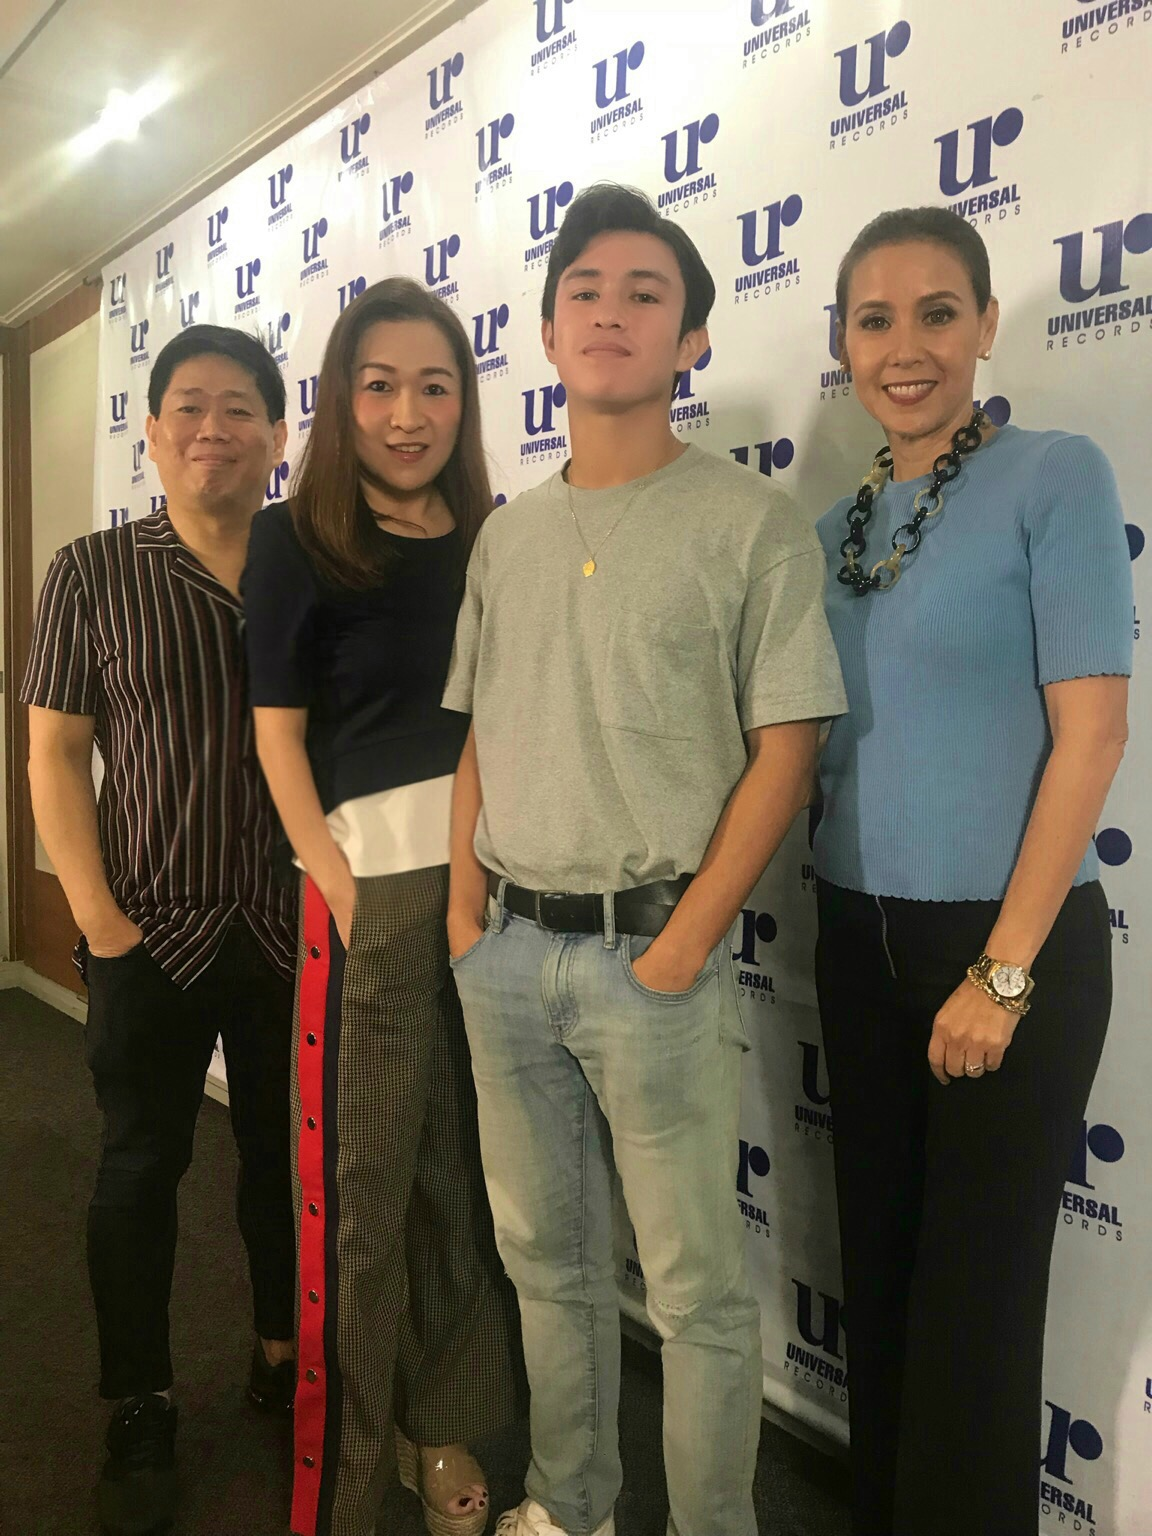 Universal Records Signs 17 Year Old Singer Songwriter Paolo